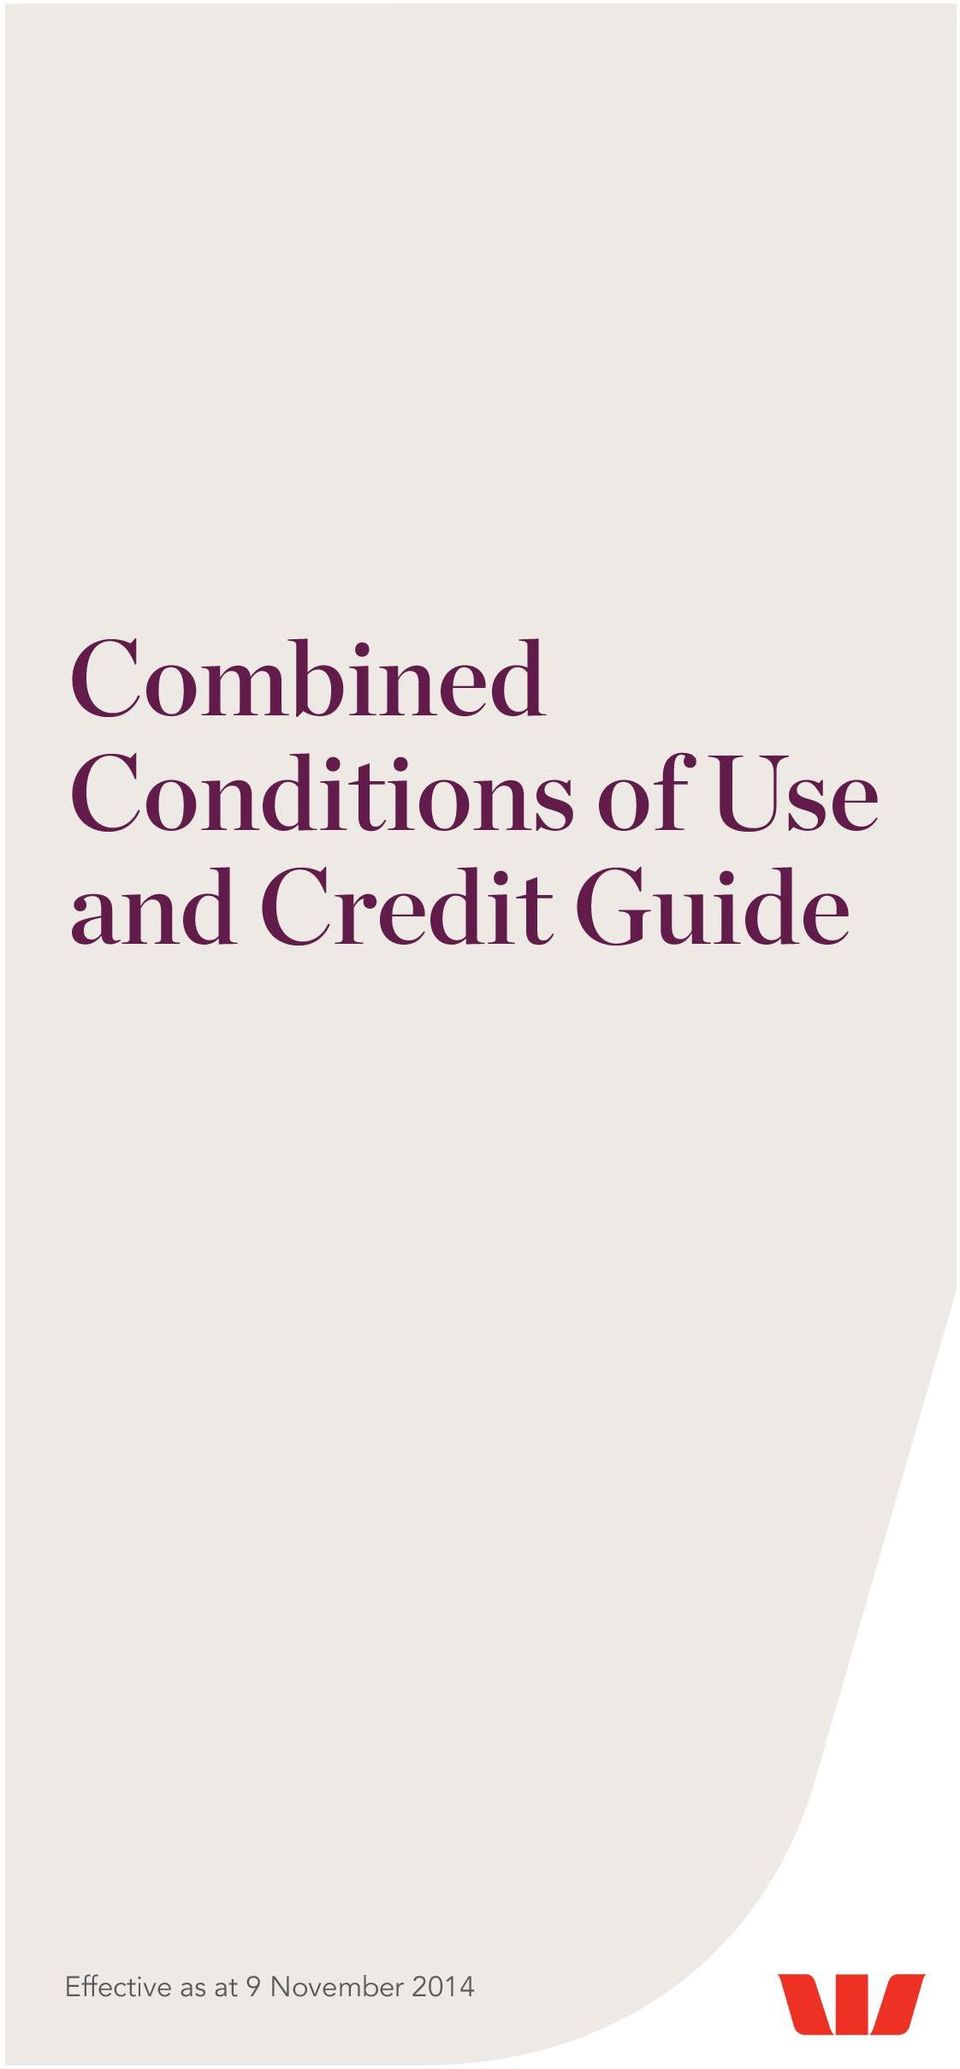 and Credit Guide